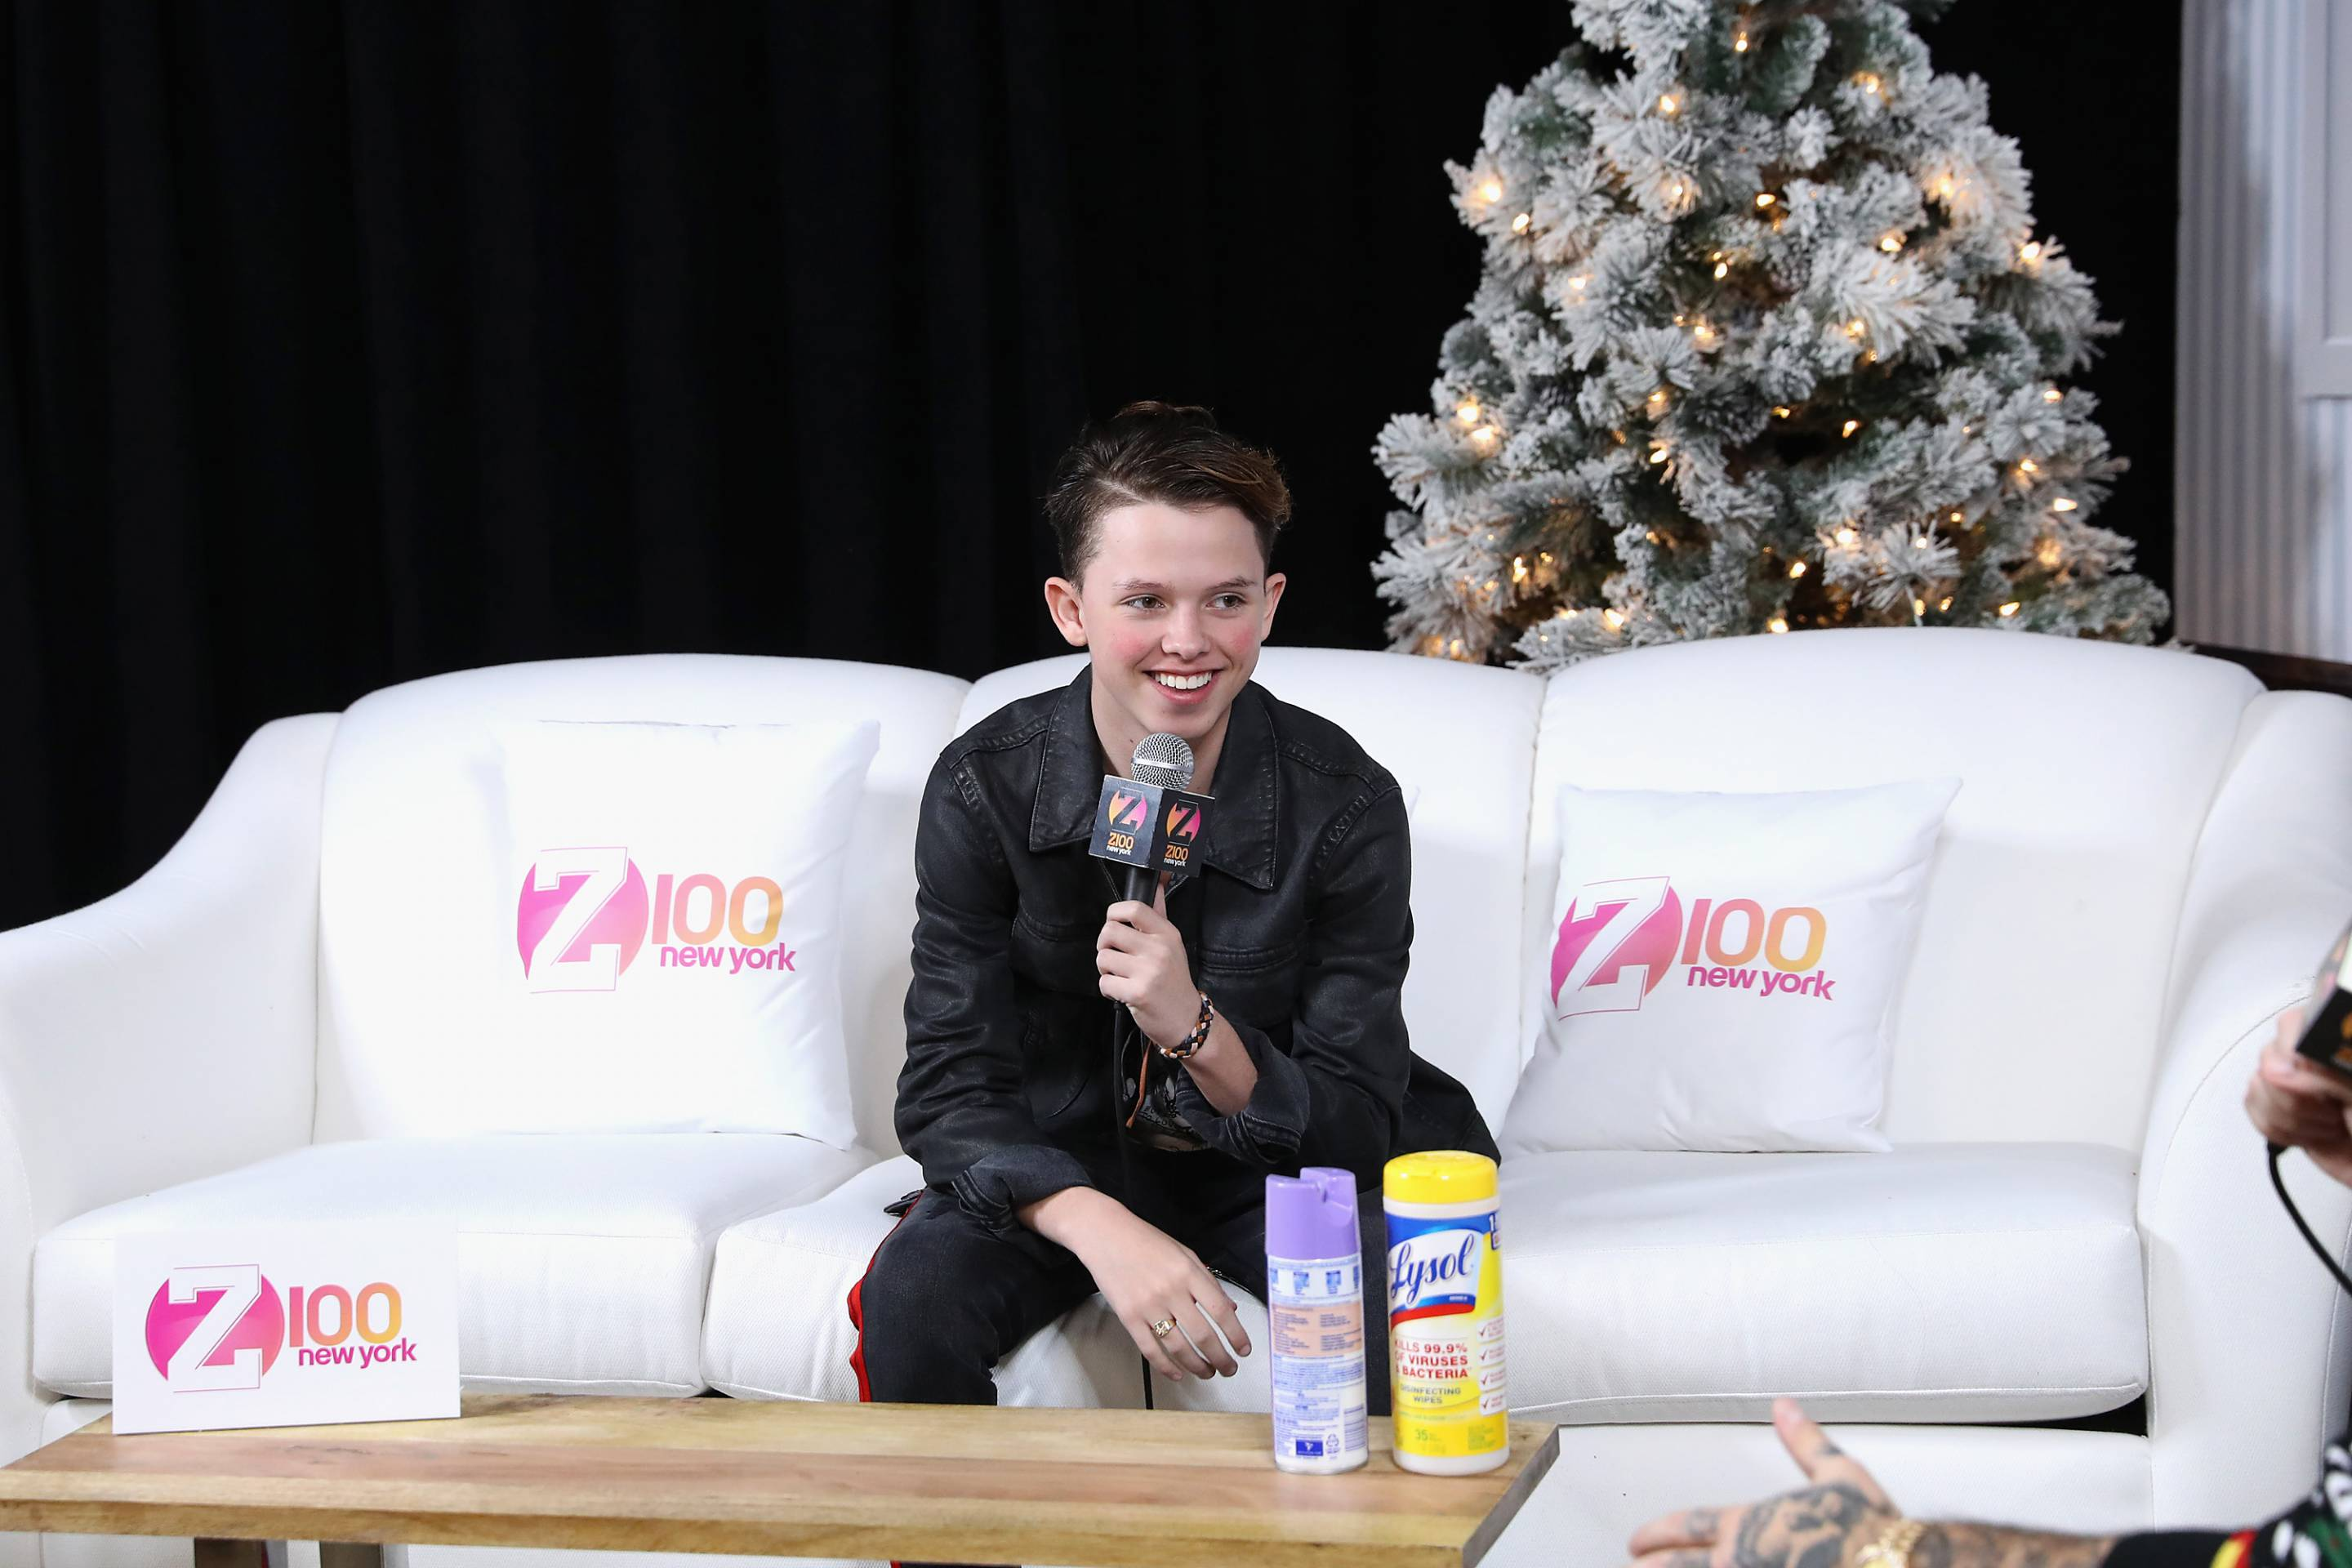 Social media influencer Jacob Sartorius attends the Z100 & Coca-Cola All Access Lounge at Hammerstein Ballroom on Dec. 8, 2017, in New York City.